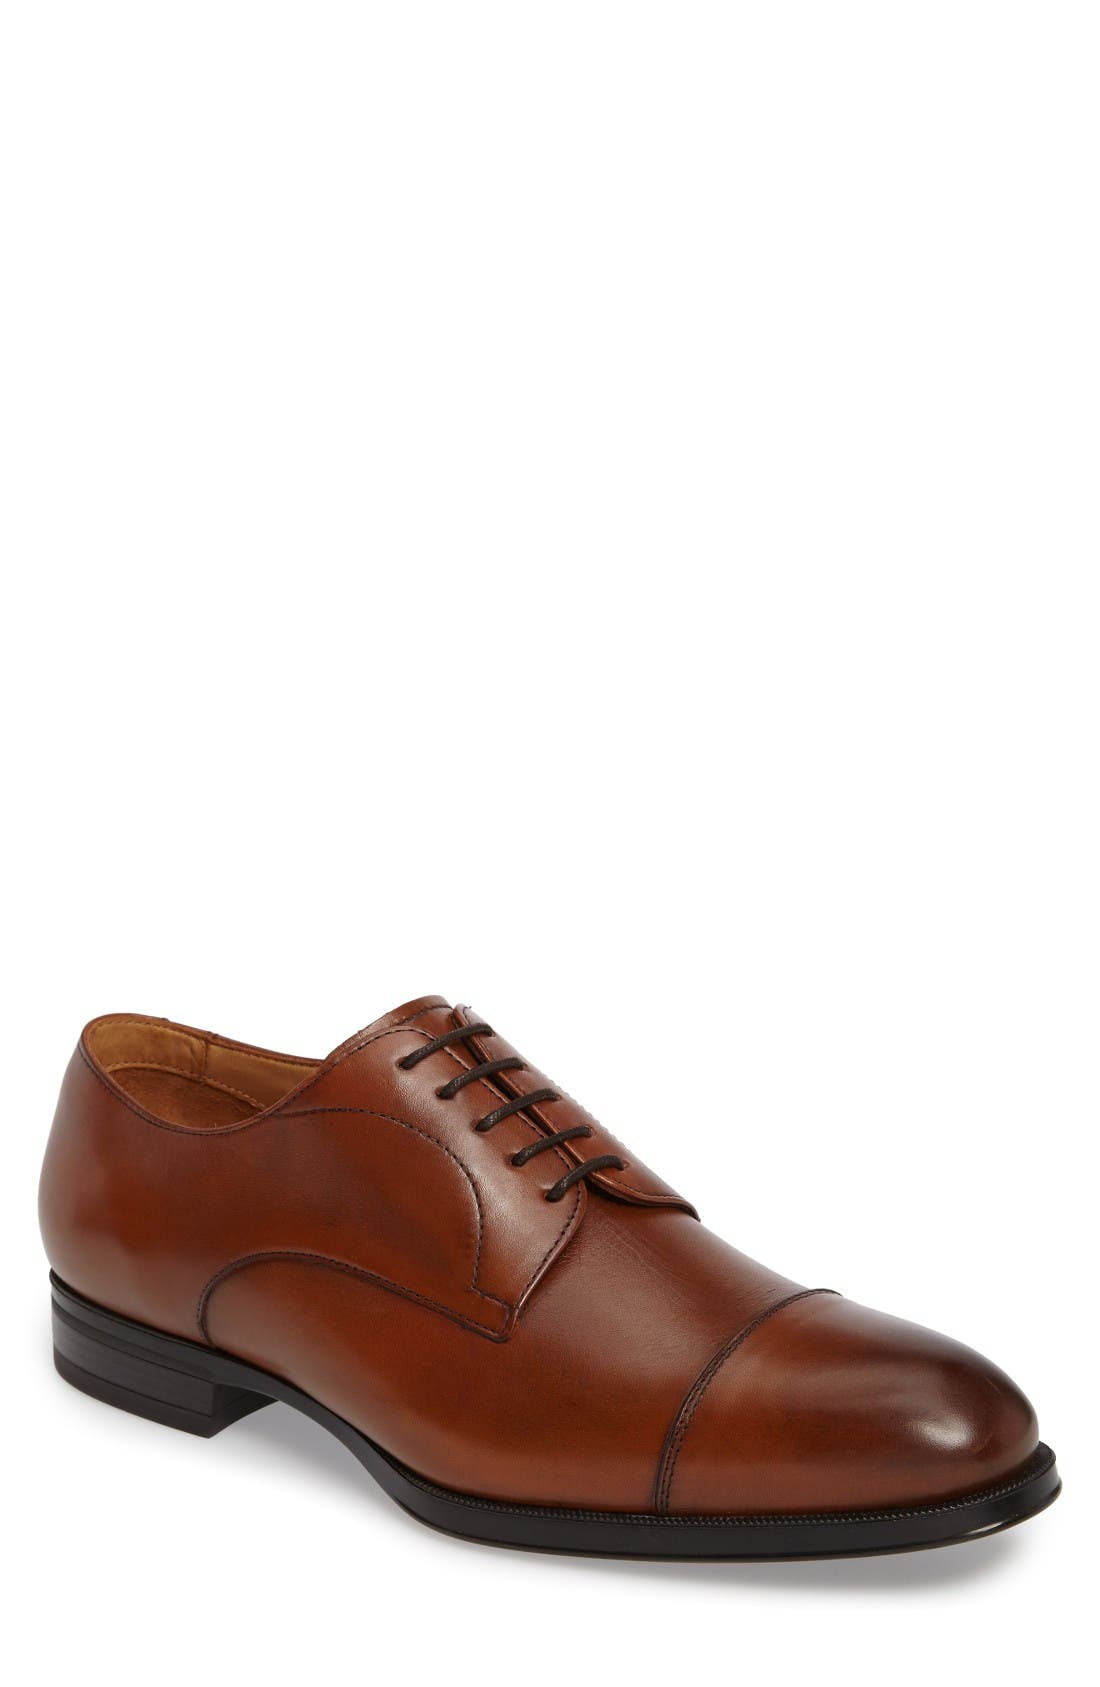 Tosto Cap Toe Derby,                             Main thumbnail 1, color,                             Luggage Leather